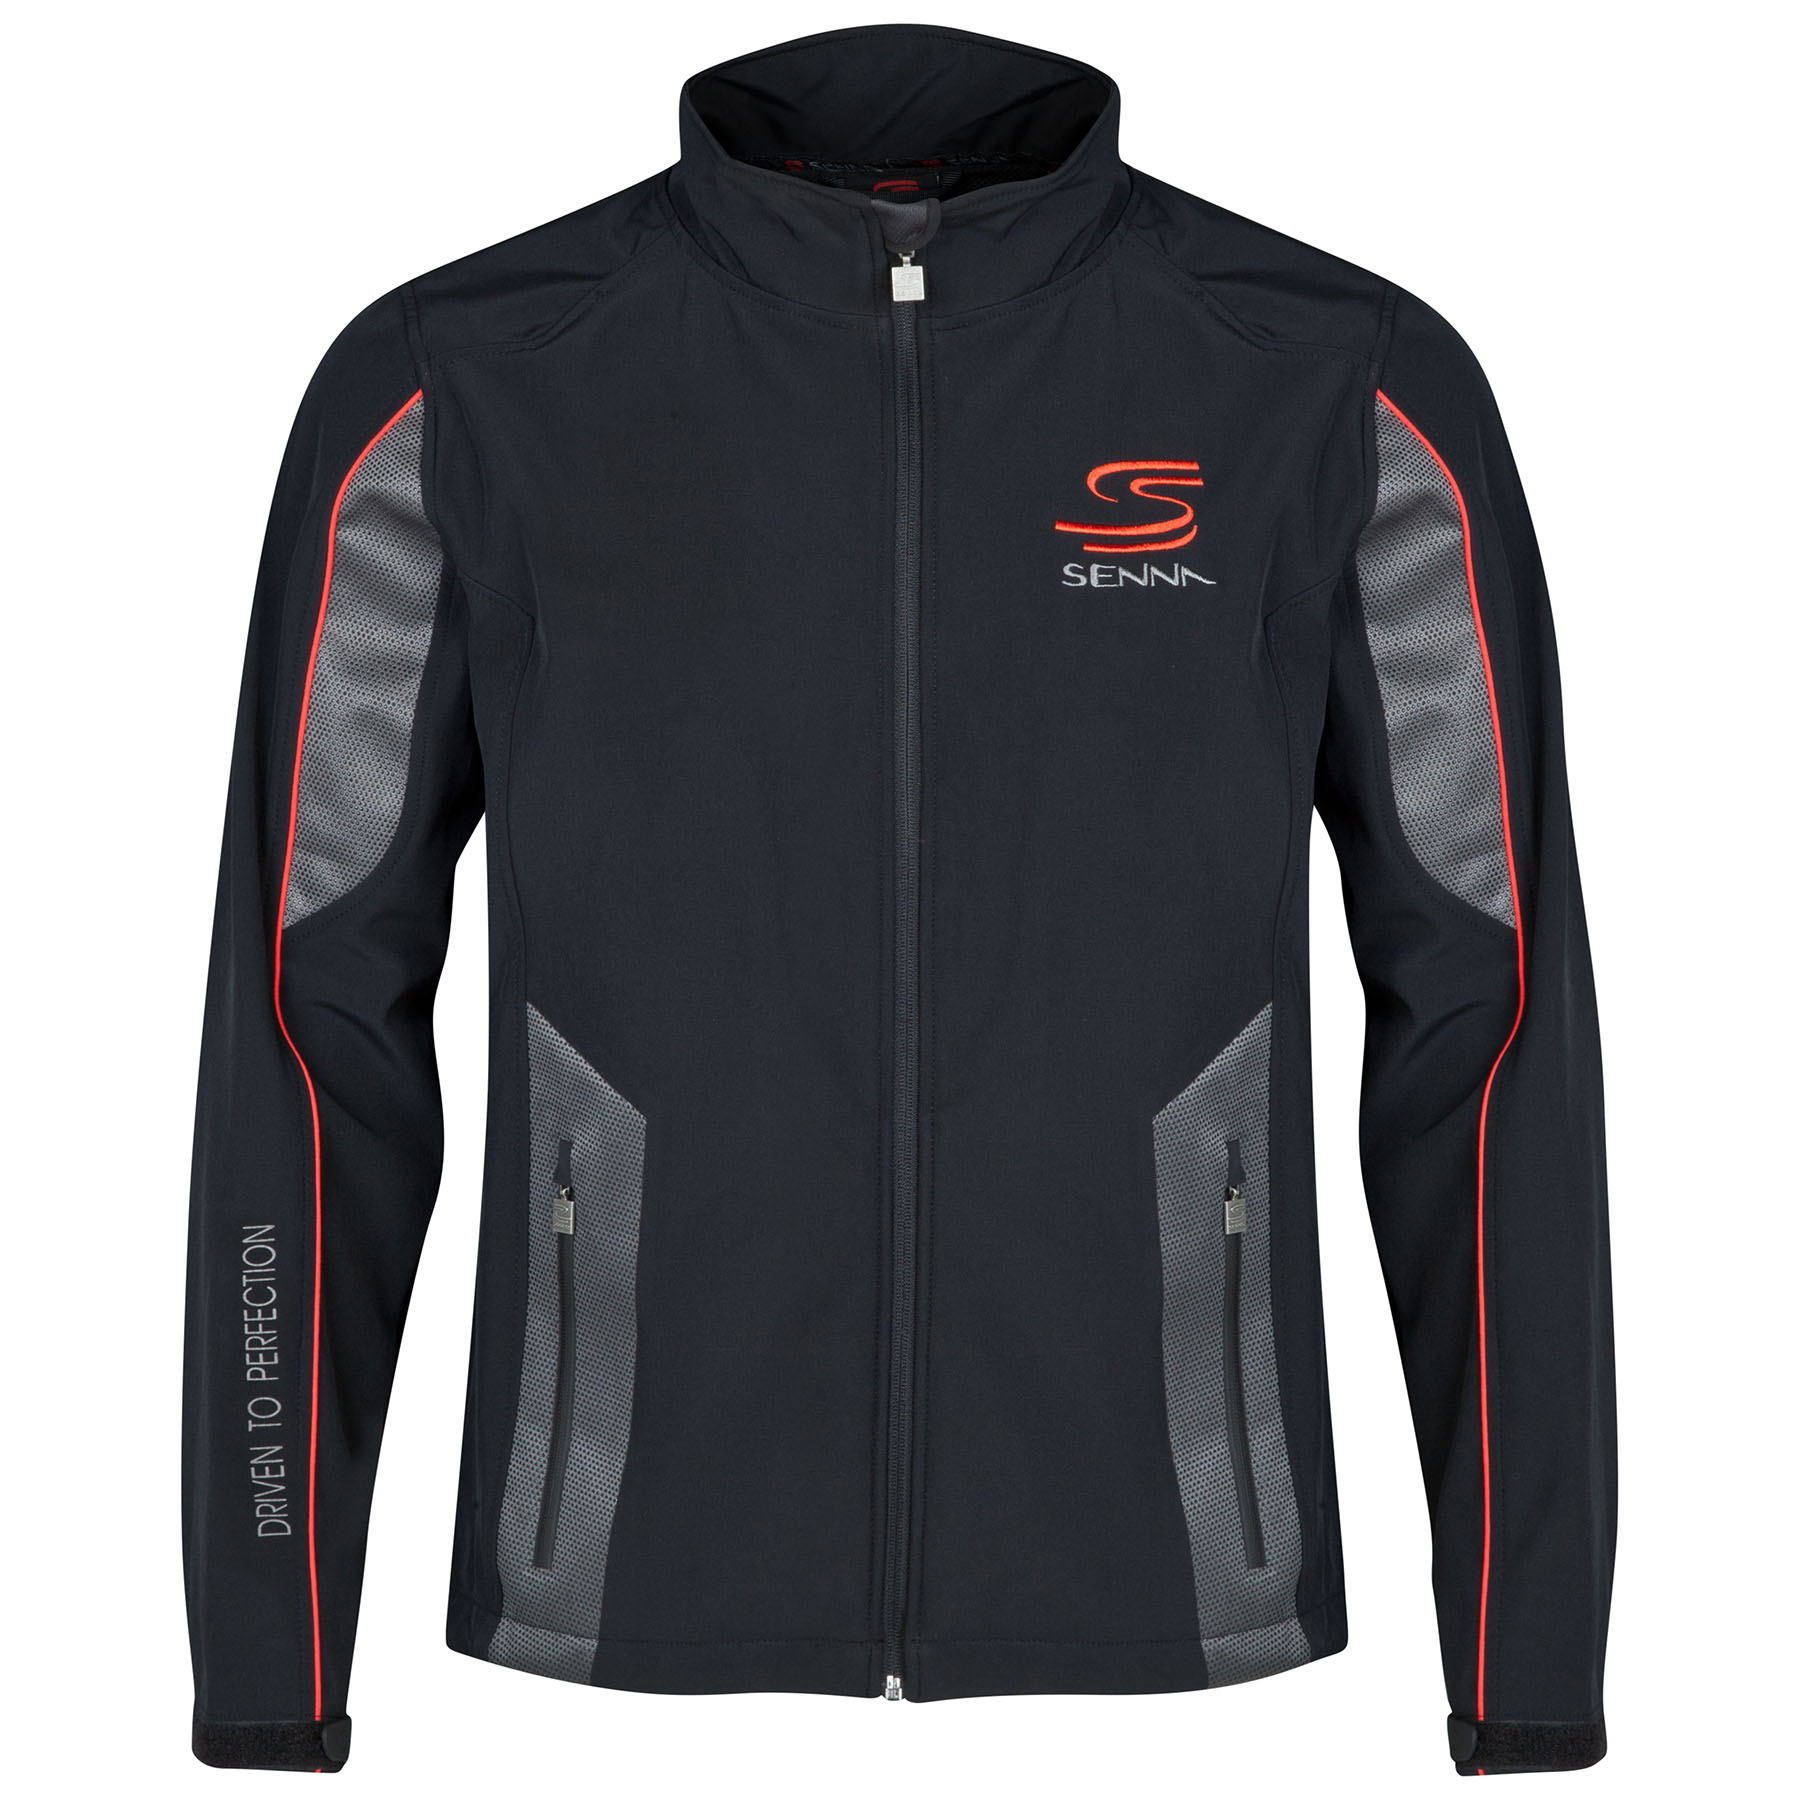 Ayrton Senna Double S Softshell Jacket